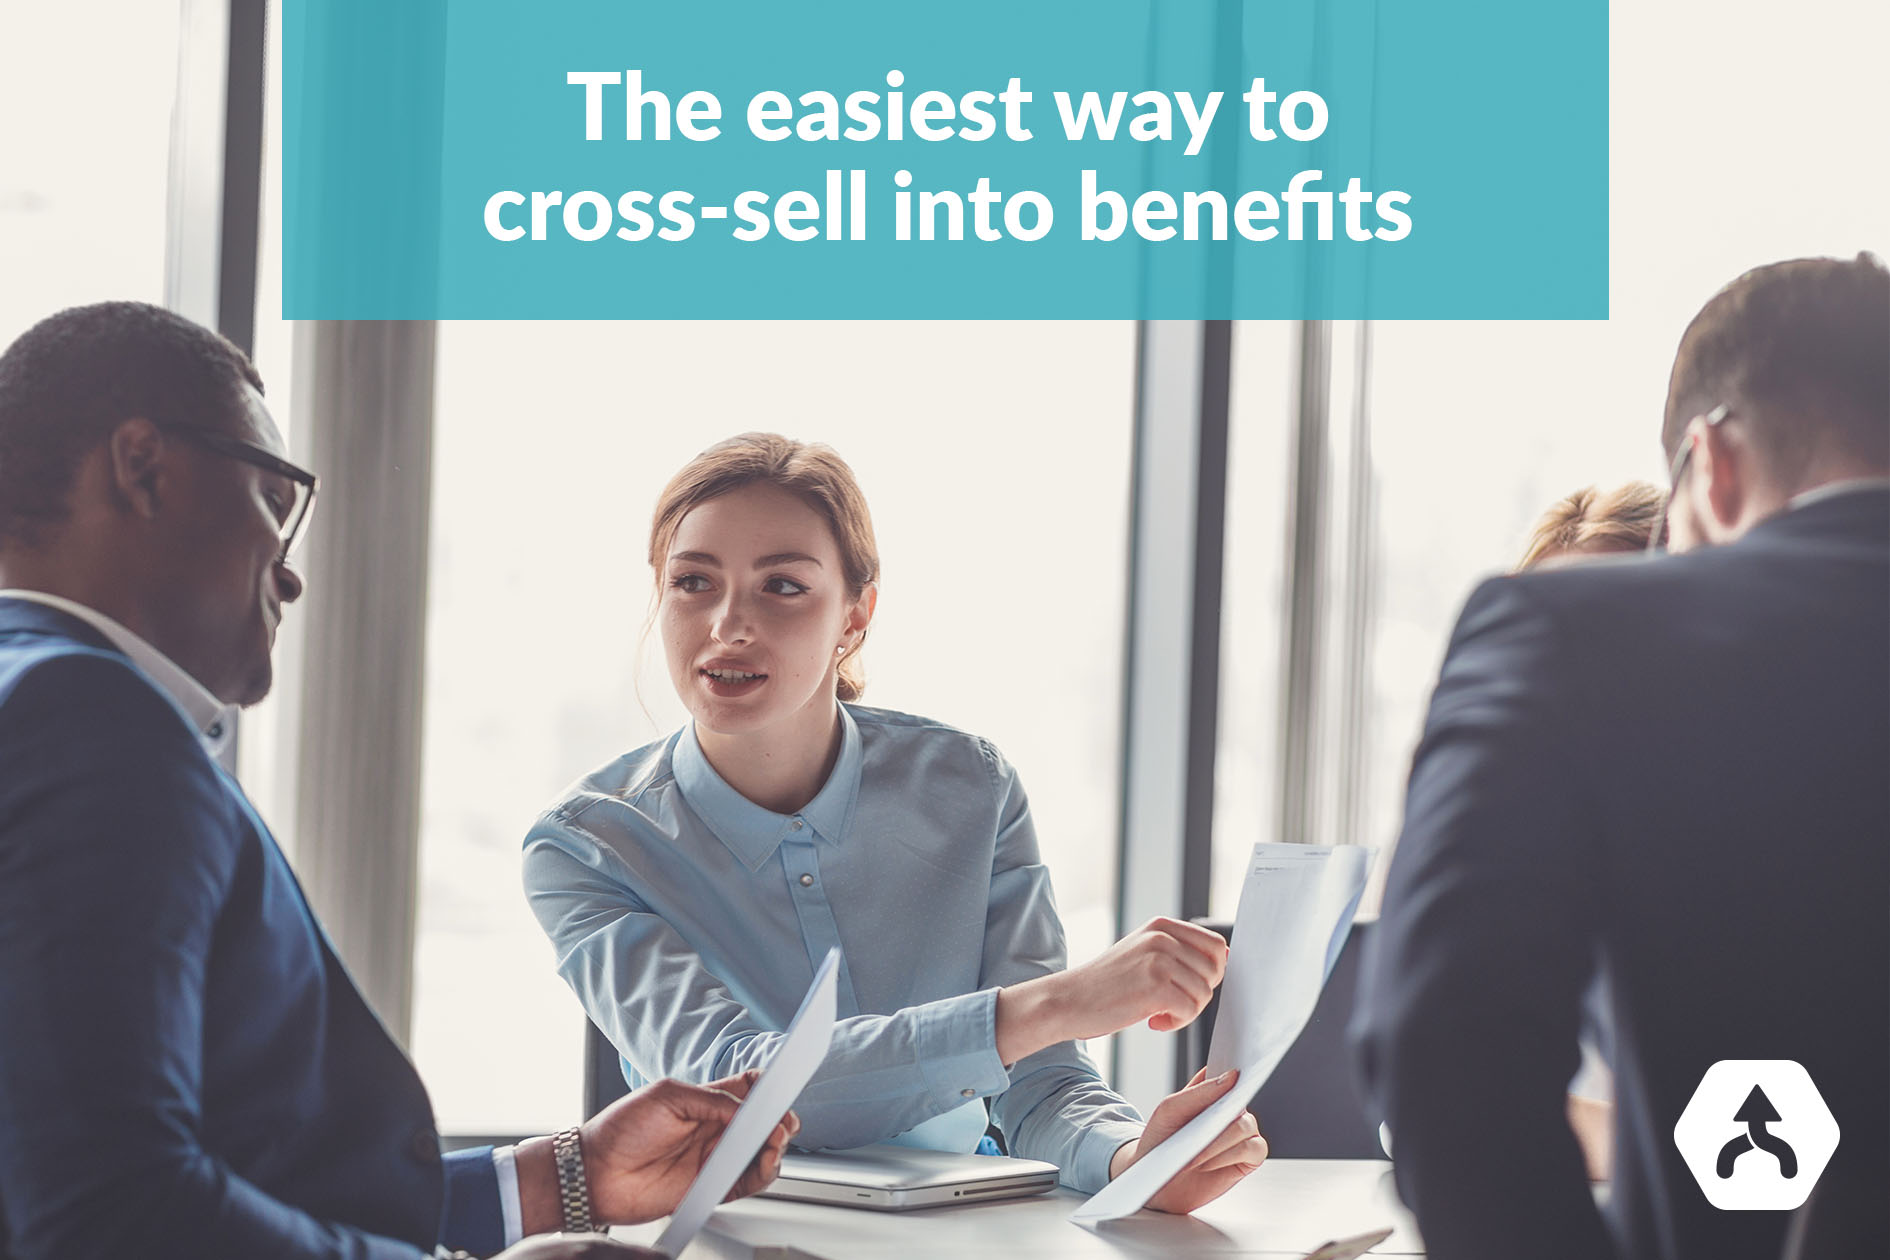 The easiest way to cross-sell into benefits